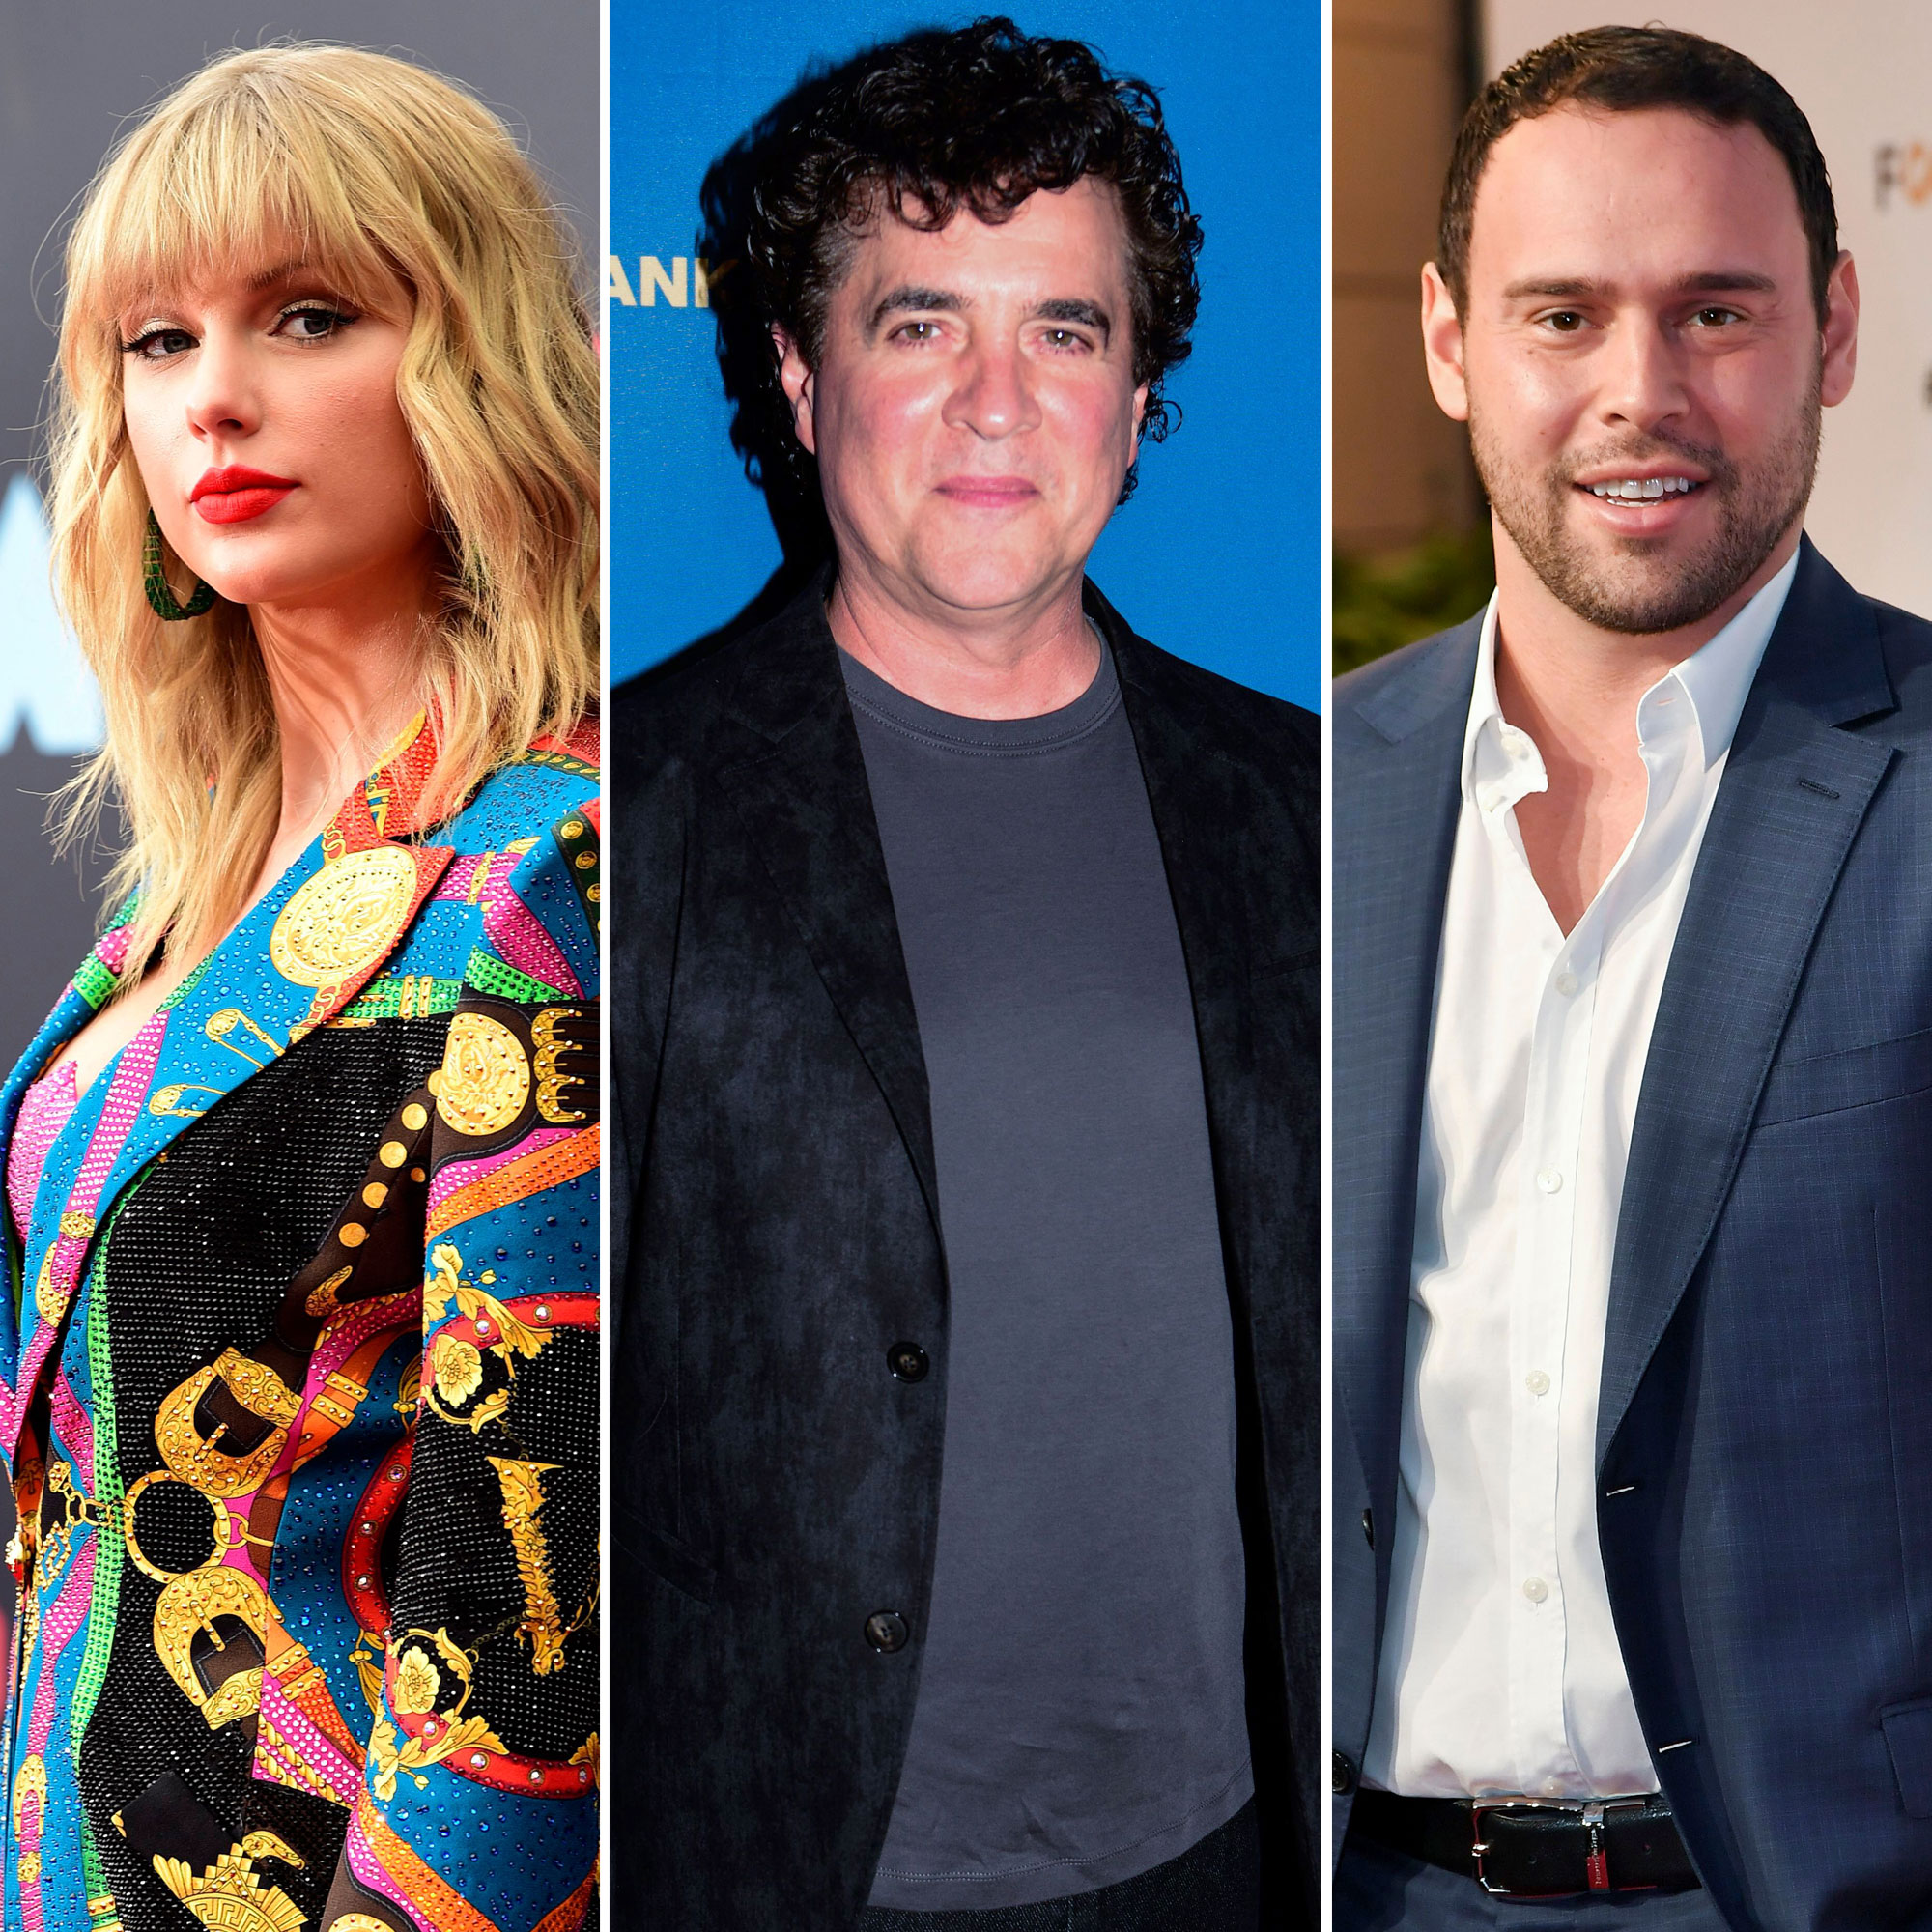 Taylor Swift Claims Scooter Braun Scott Borchetta Won T Let Her Play Old Songs Bestindinews Com